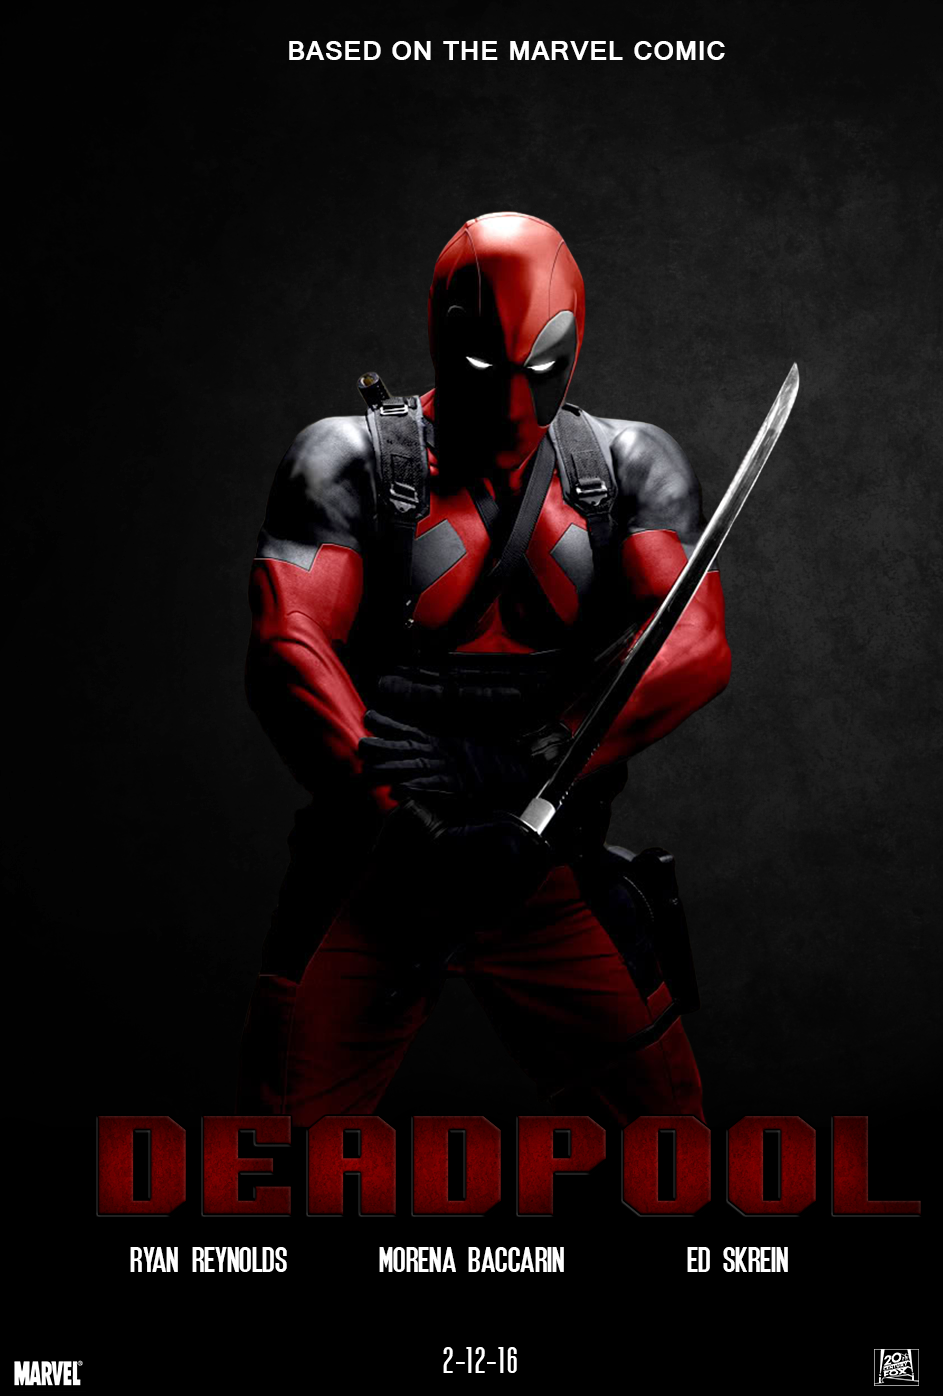 Deadpool movie poster by chronoxiong on DeviantArt